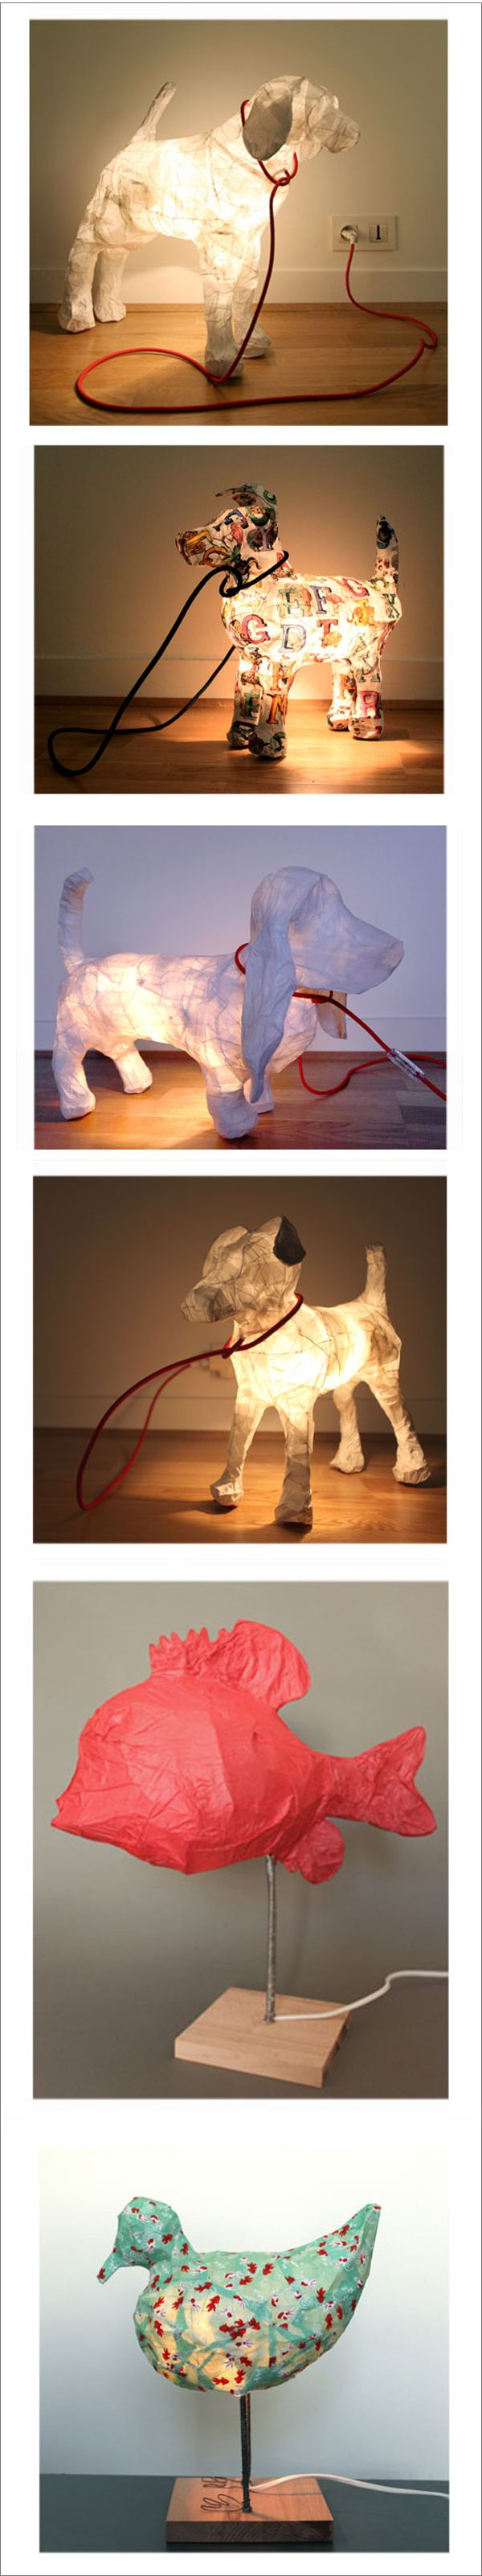 animal-shaped paper lamps - great for those who want a dog but can't have one, or want a guard dog to watch over them at night!